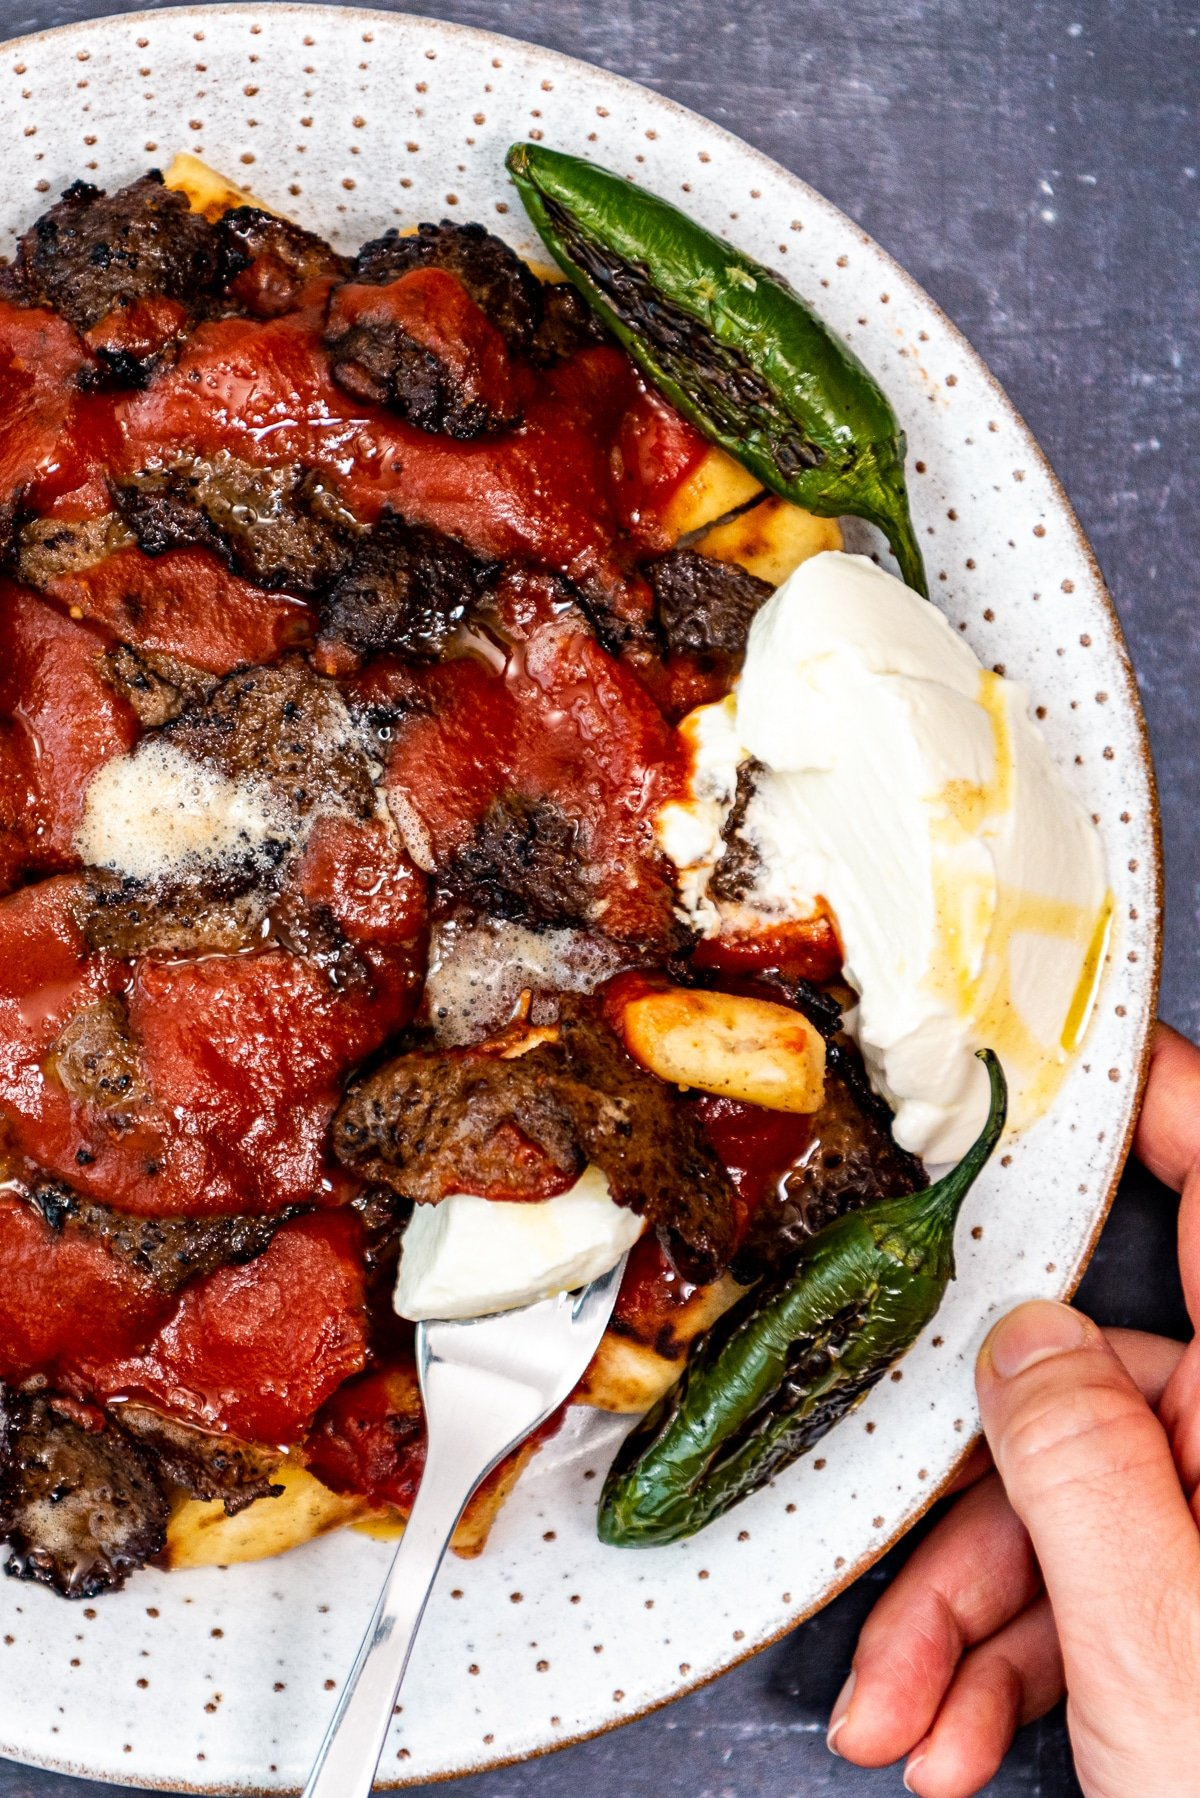 A hand holding the plate of Turkish iskender kebap.